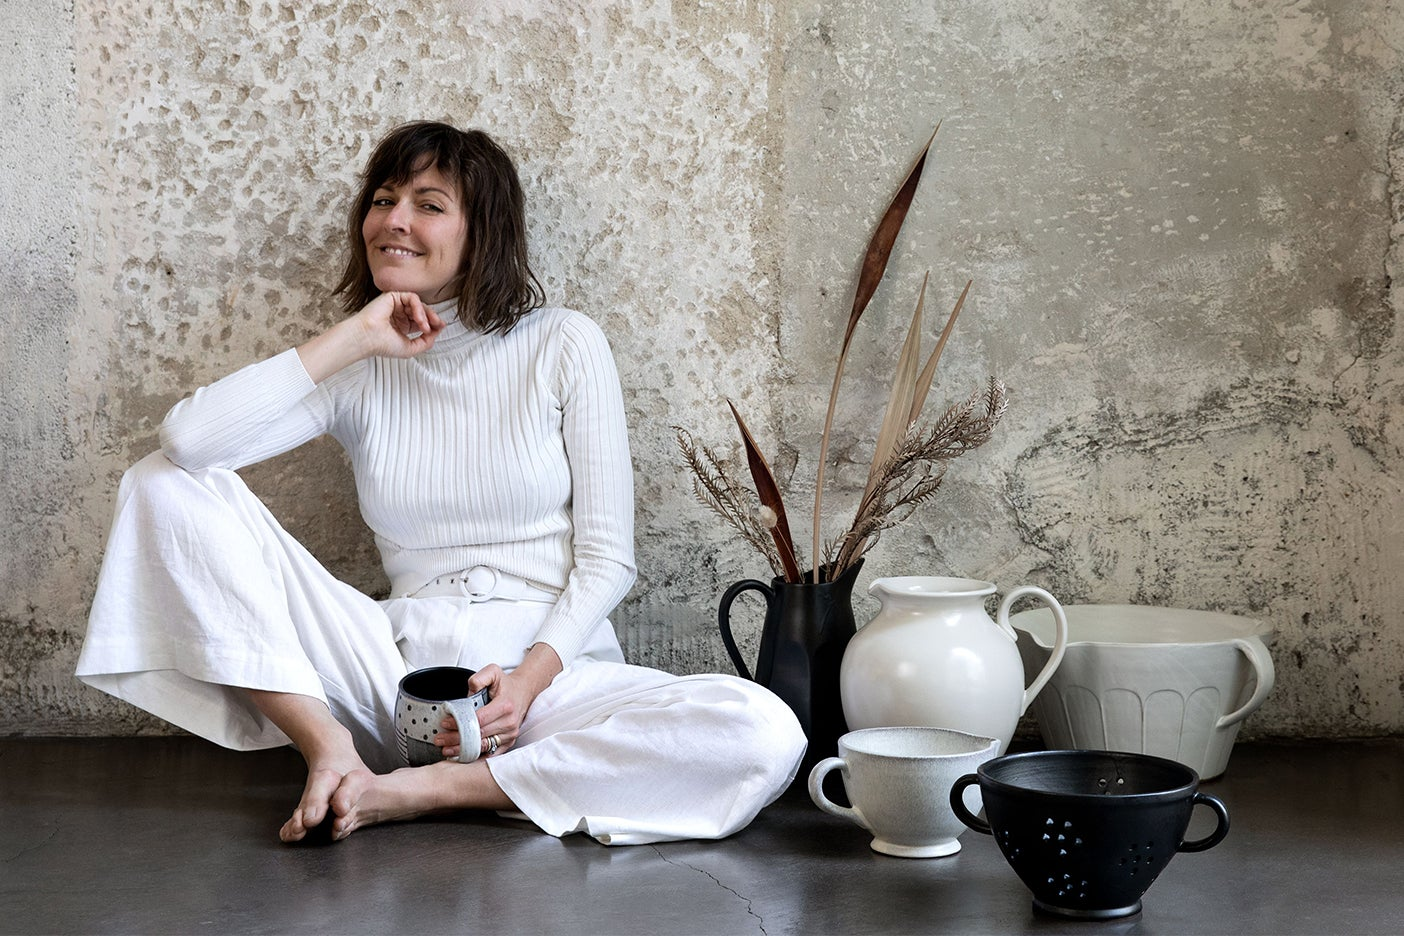 leanne ford in white outfit sitting near vessels